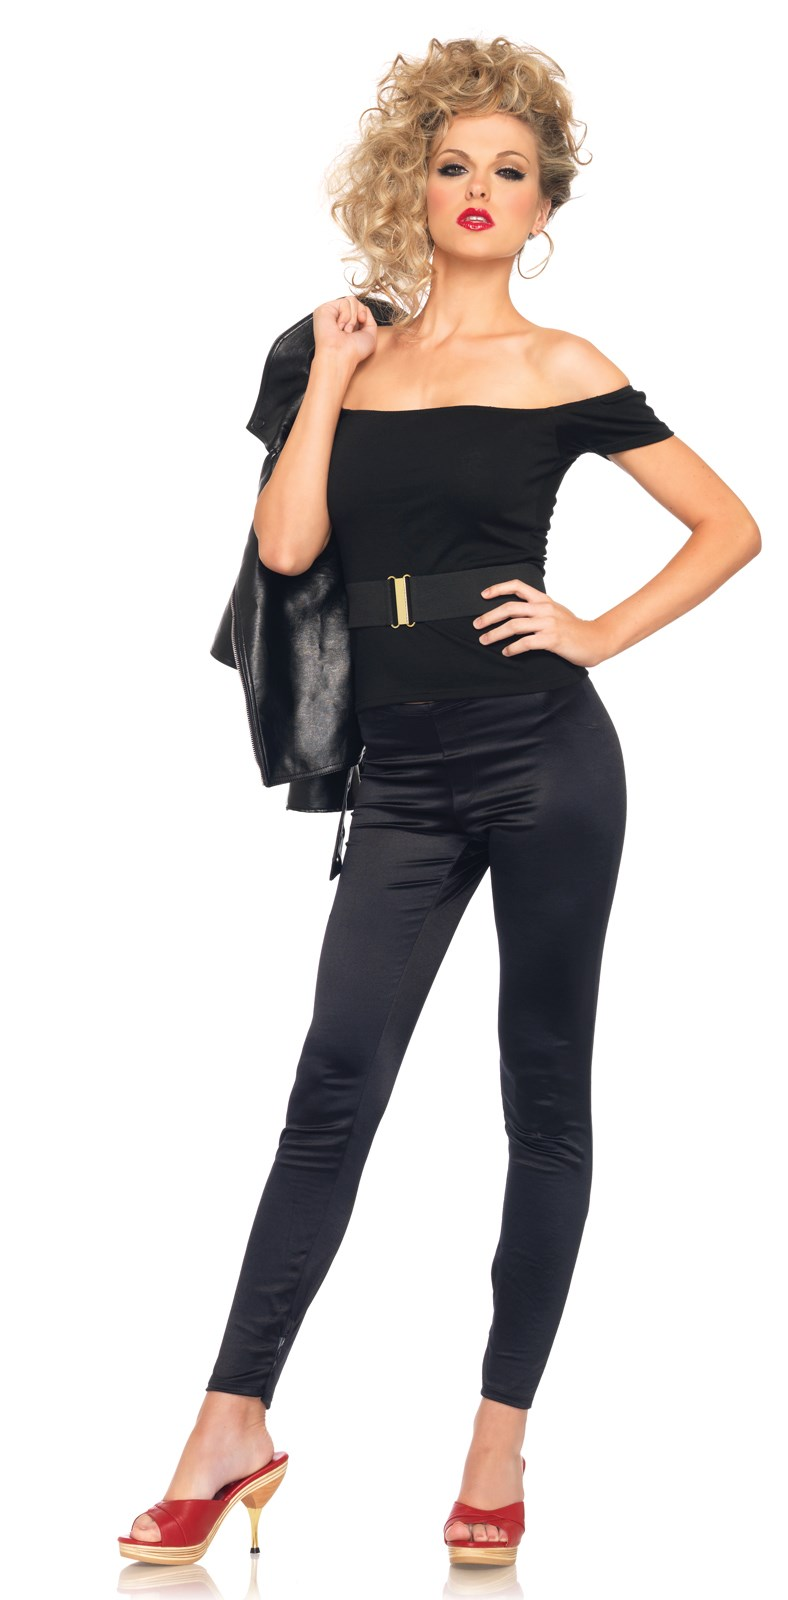 Grease Bad Sandy Outfit Adult Costume | BuyCostumes.com